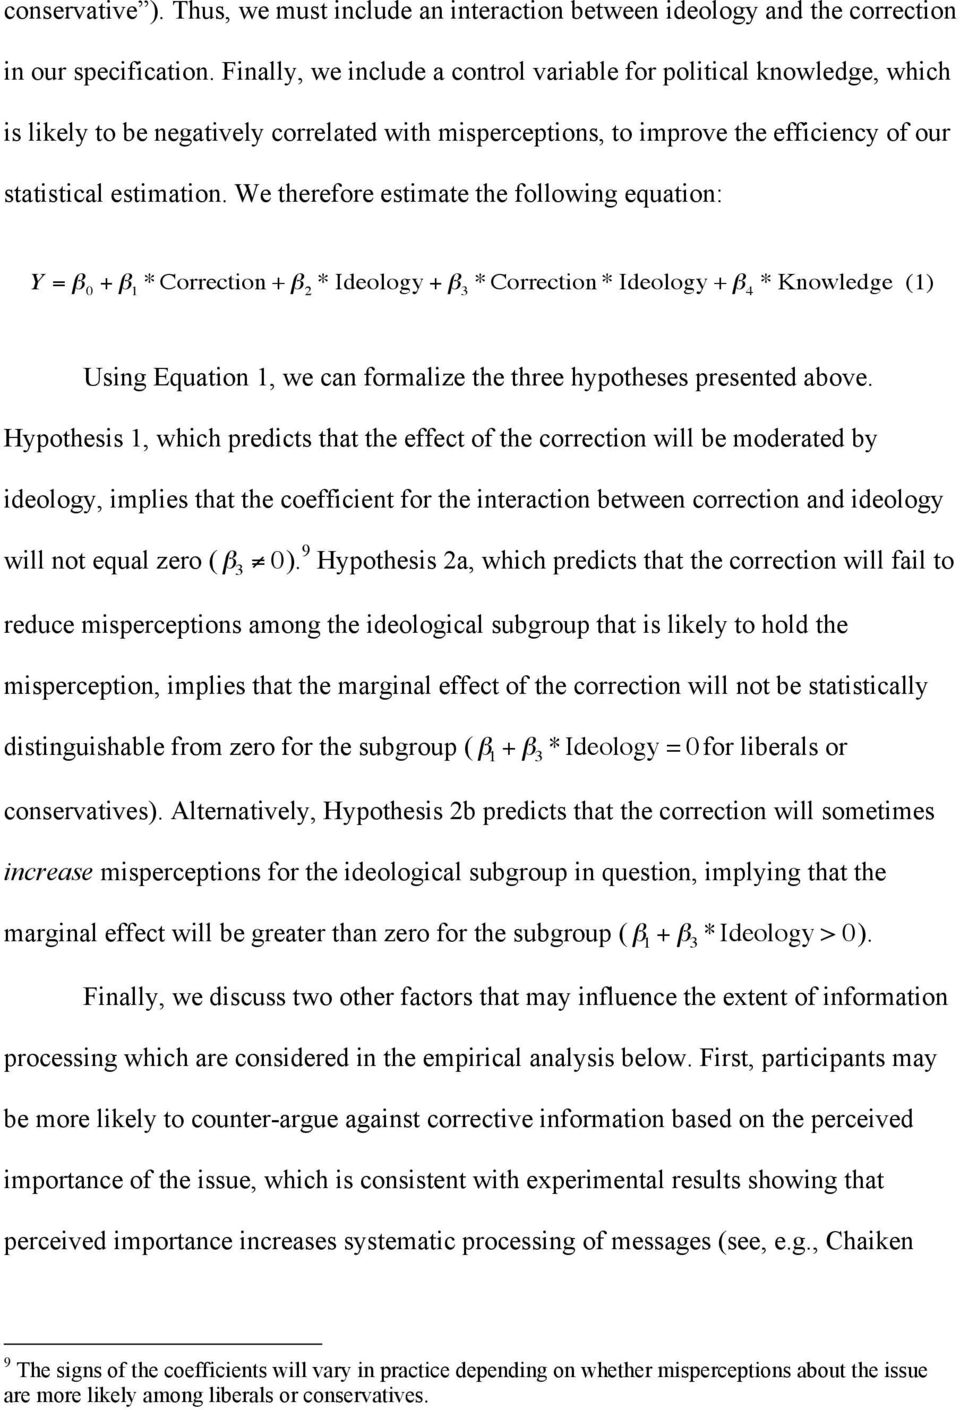 We therefore estimate the following equation: Y = β 0 + β 1 * Correction + β 2 * Ideology + β 3 * Correction * Ideology + β 4 * Knowledge (1) Using Equation 1, we can formalize the three hypotheses